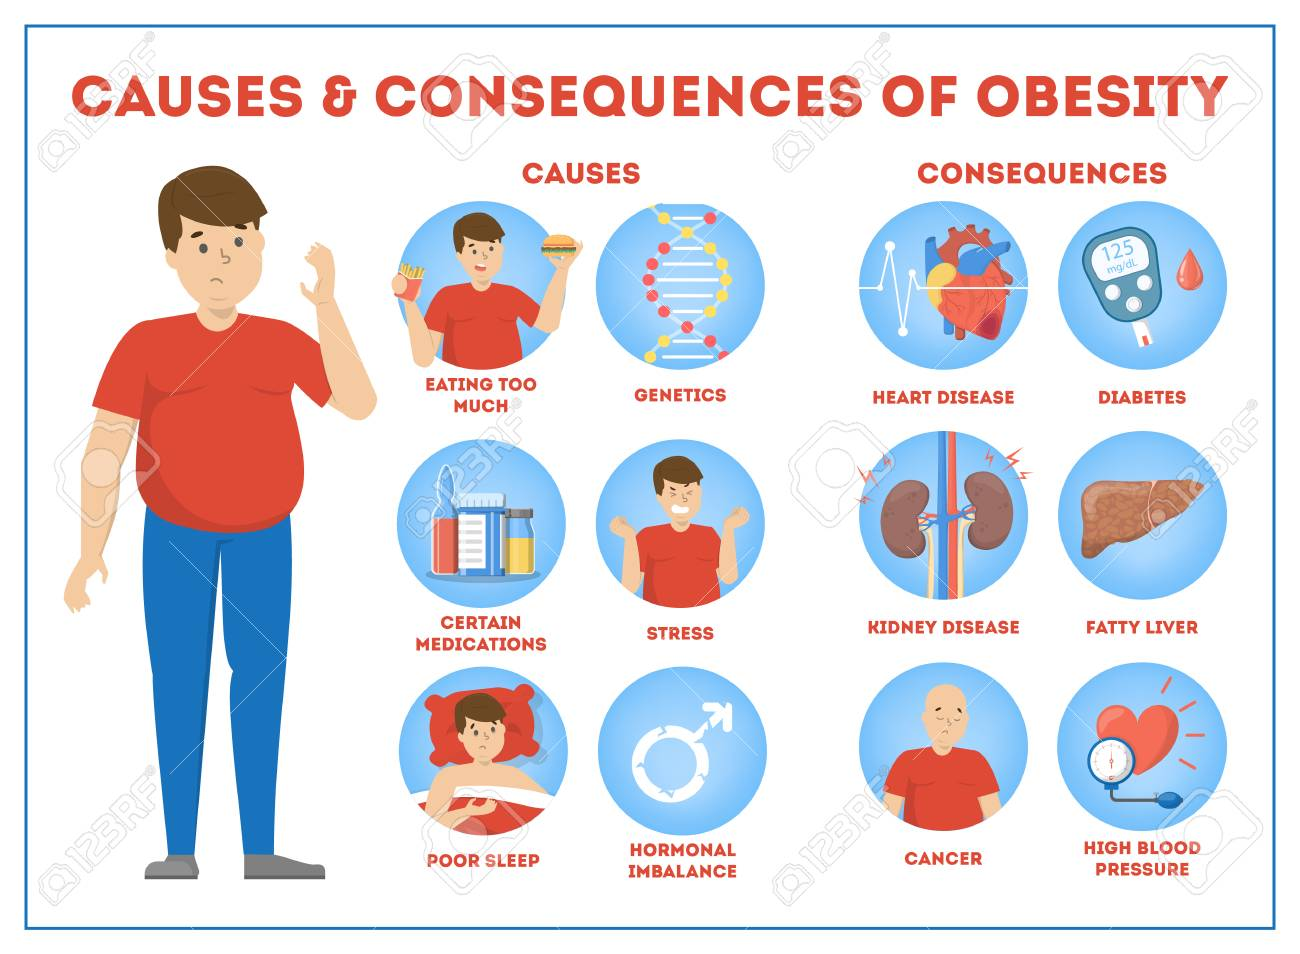 Obesity Causes And Consequences Infographic For Overweight Royalty Free Cliparts Vectors And Stock Illustration Image 116897627